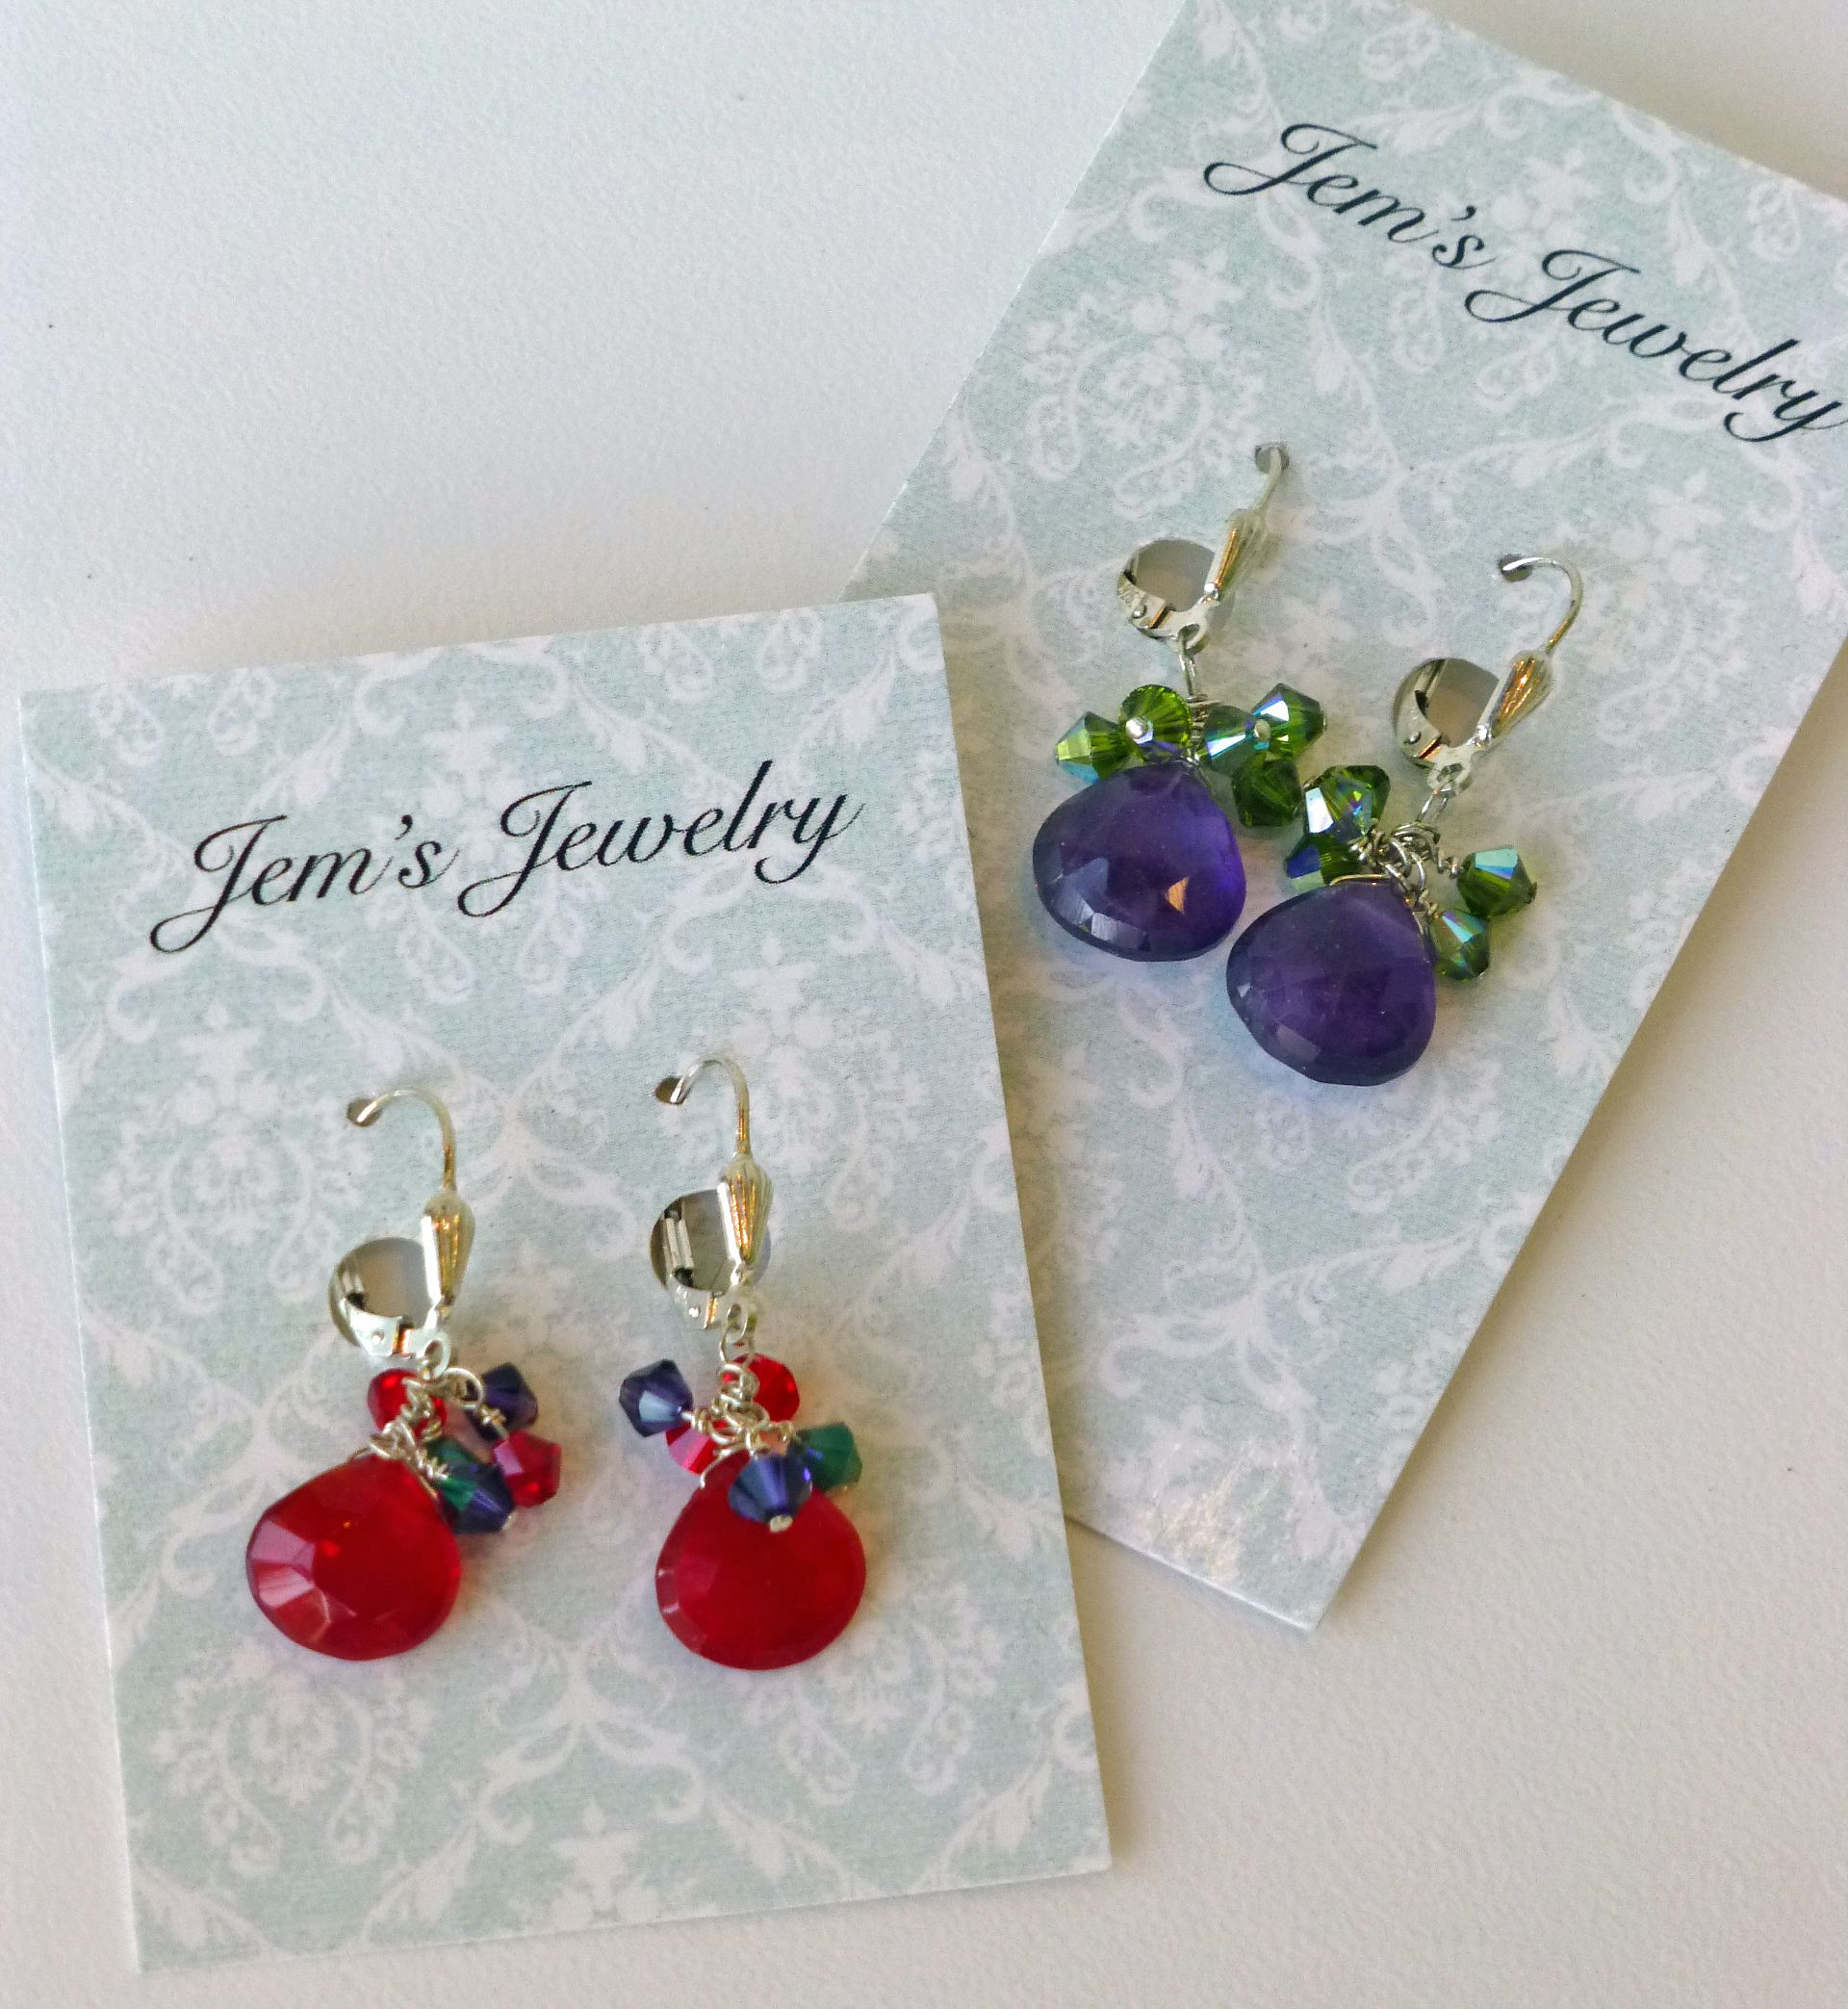 Mary Freiburger, Glass and crystal earrings, $26-60